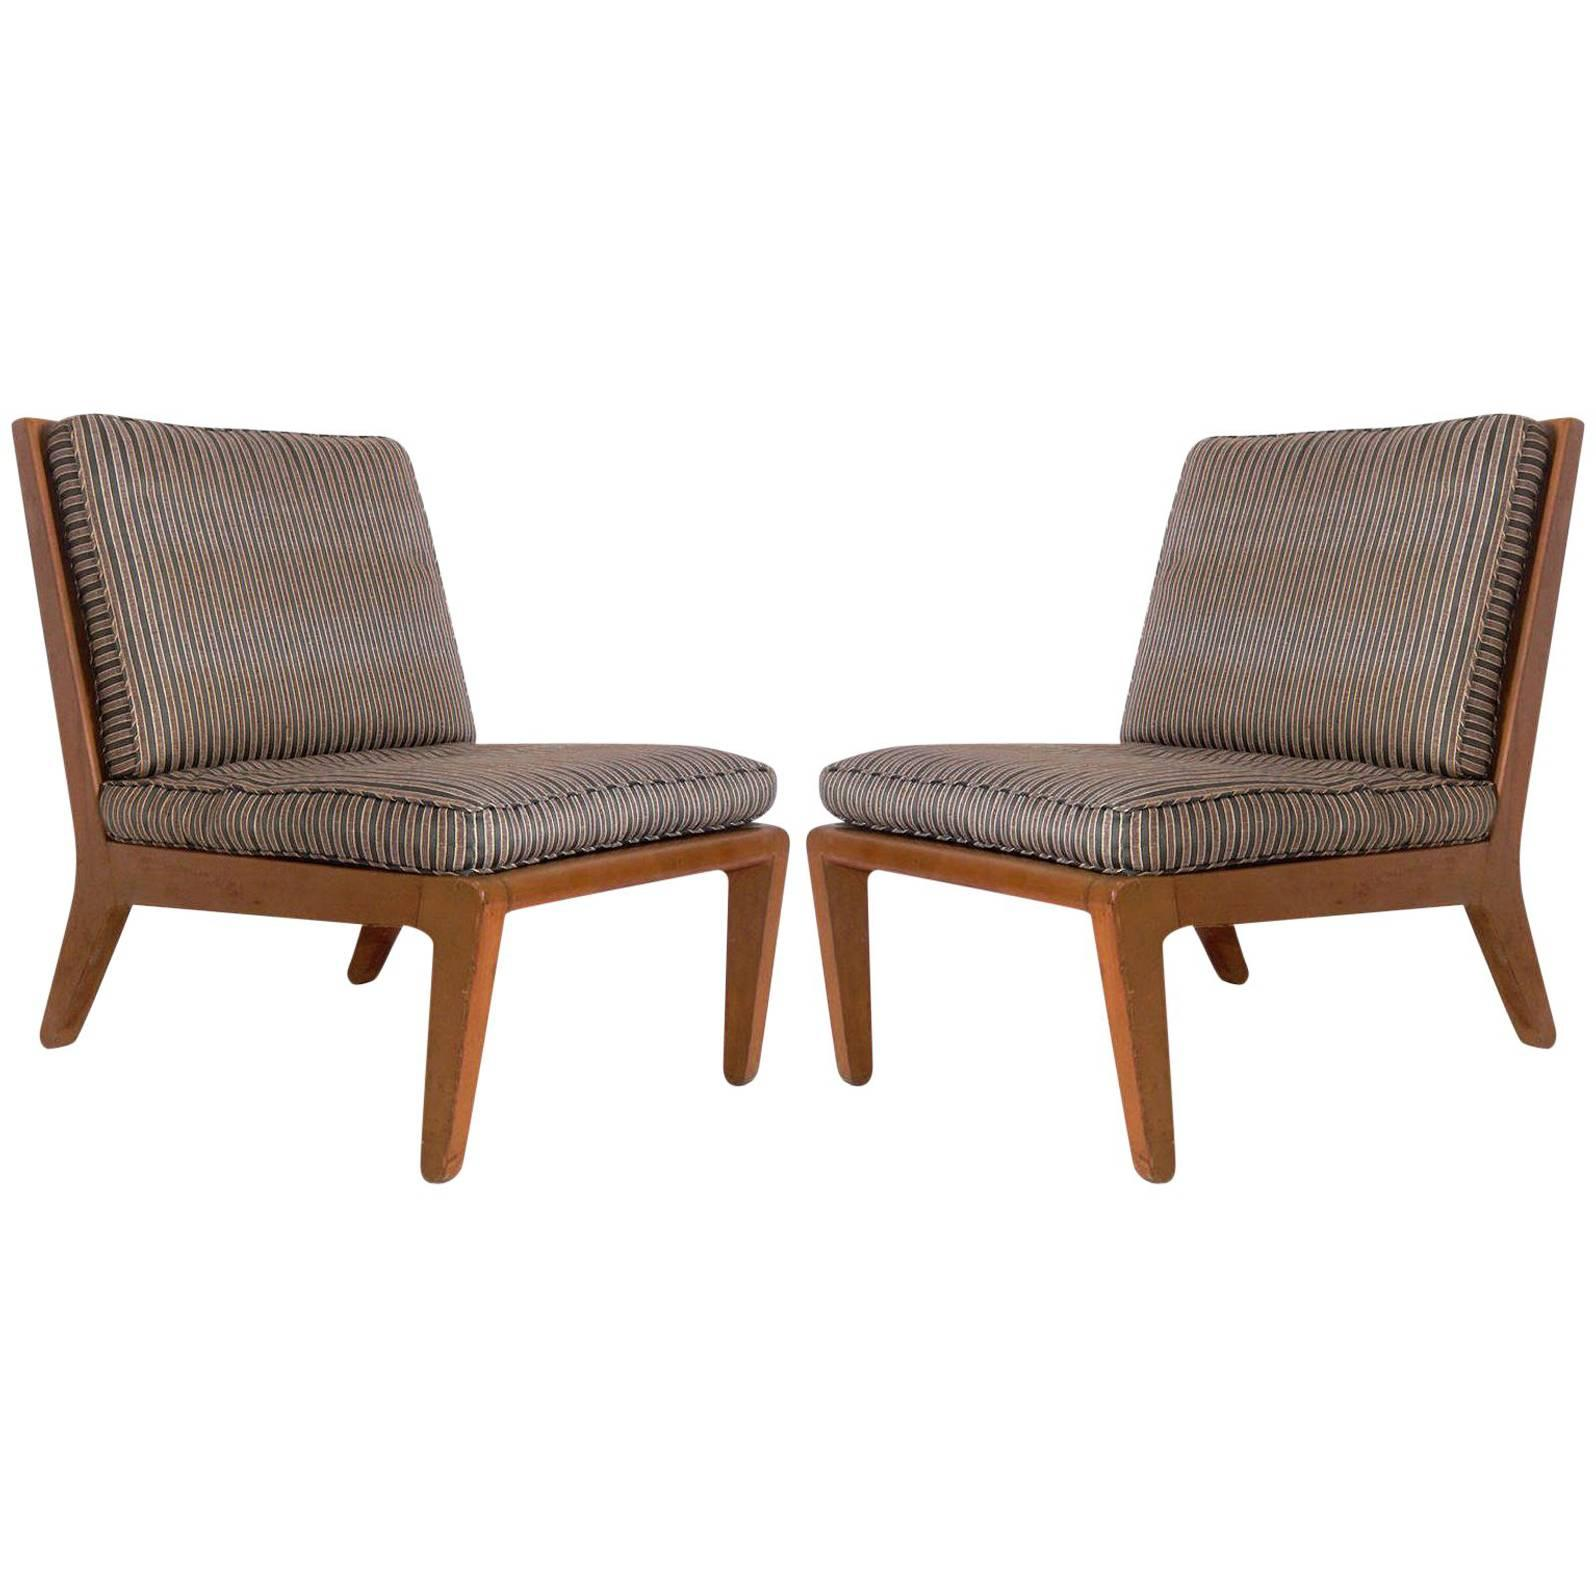 Pair of Edward Wormley Slipper Chairs